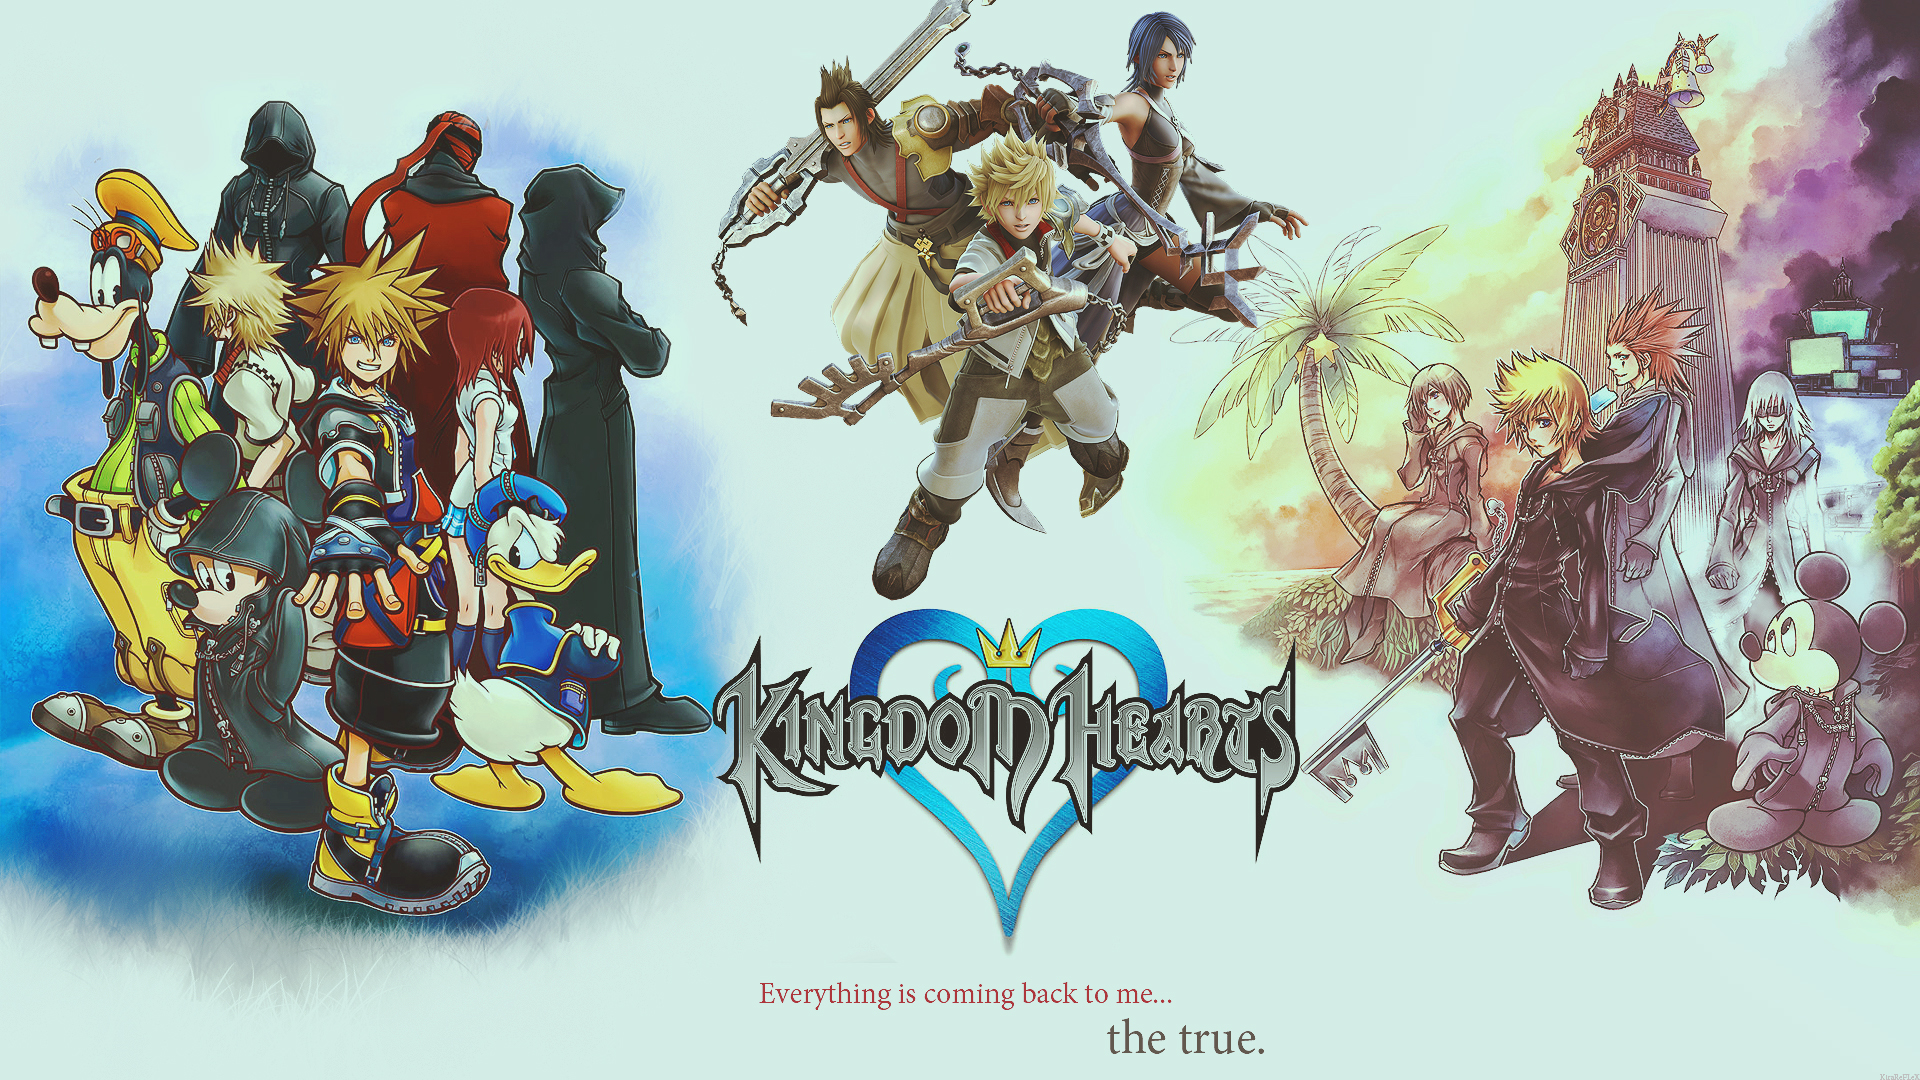 Kingdom Hearts 358 2 Days Cover 1920x1080